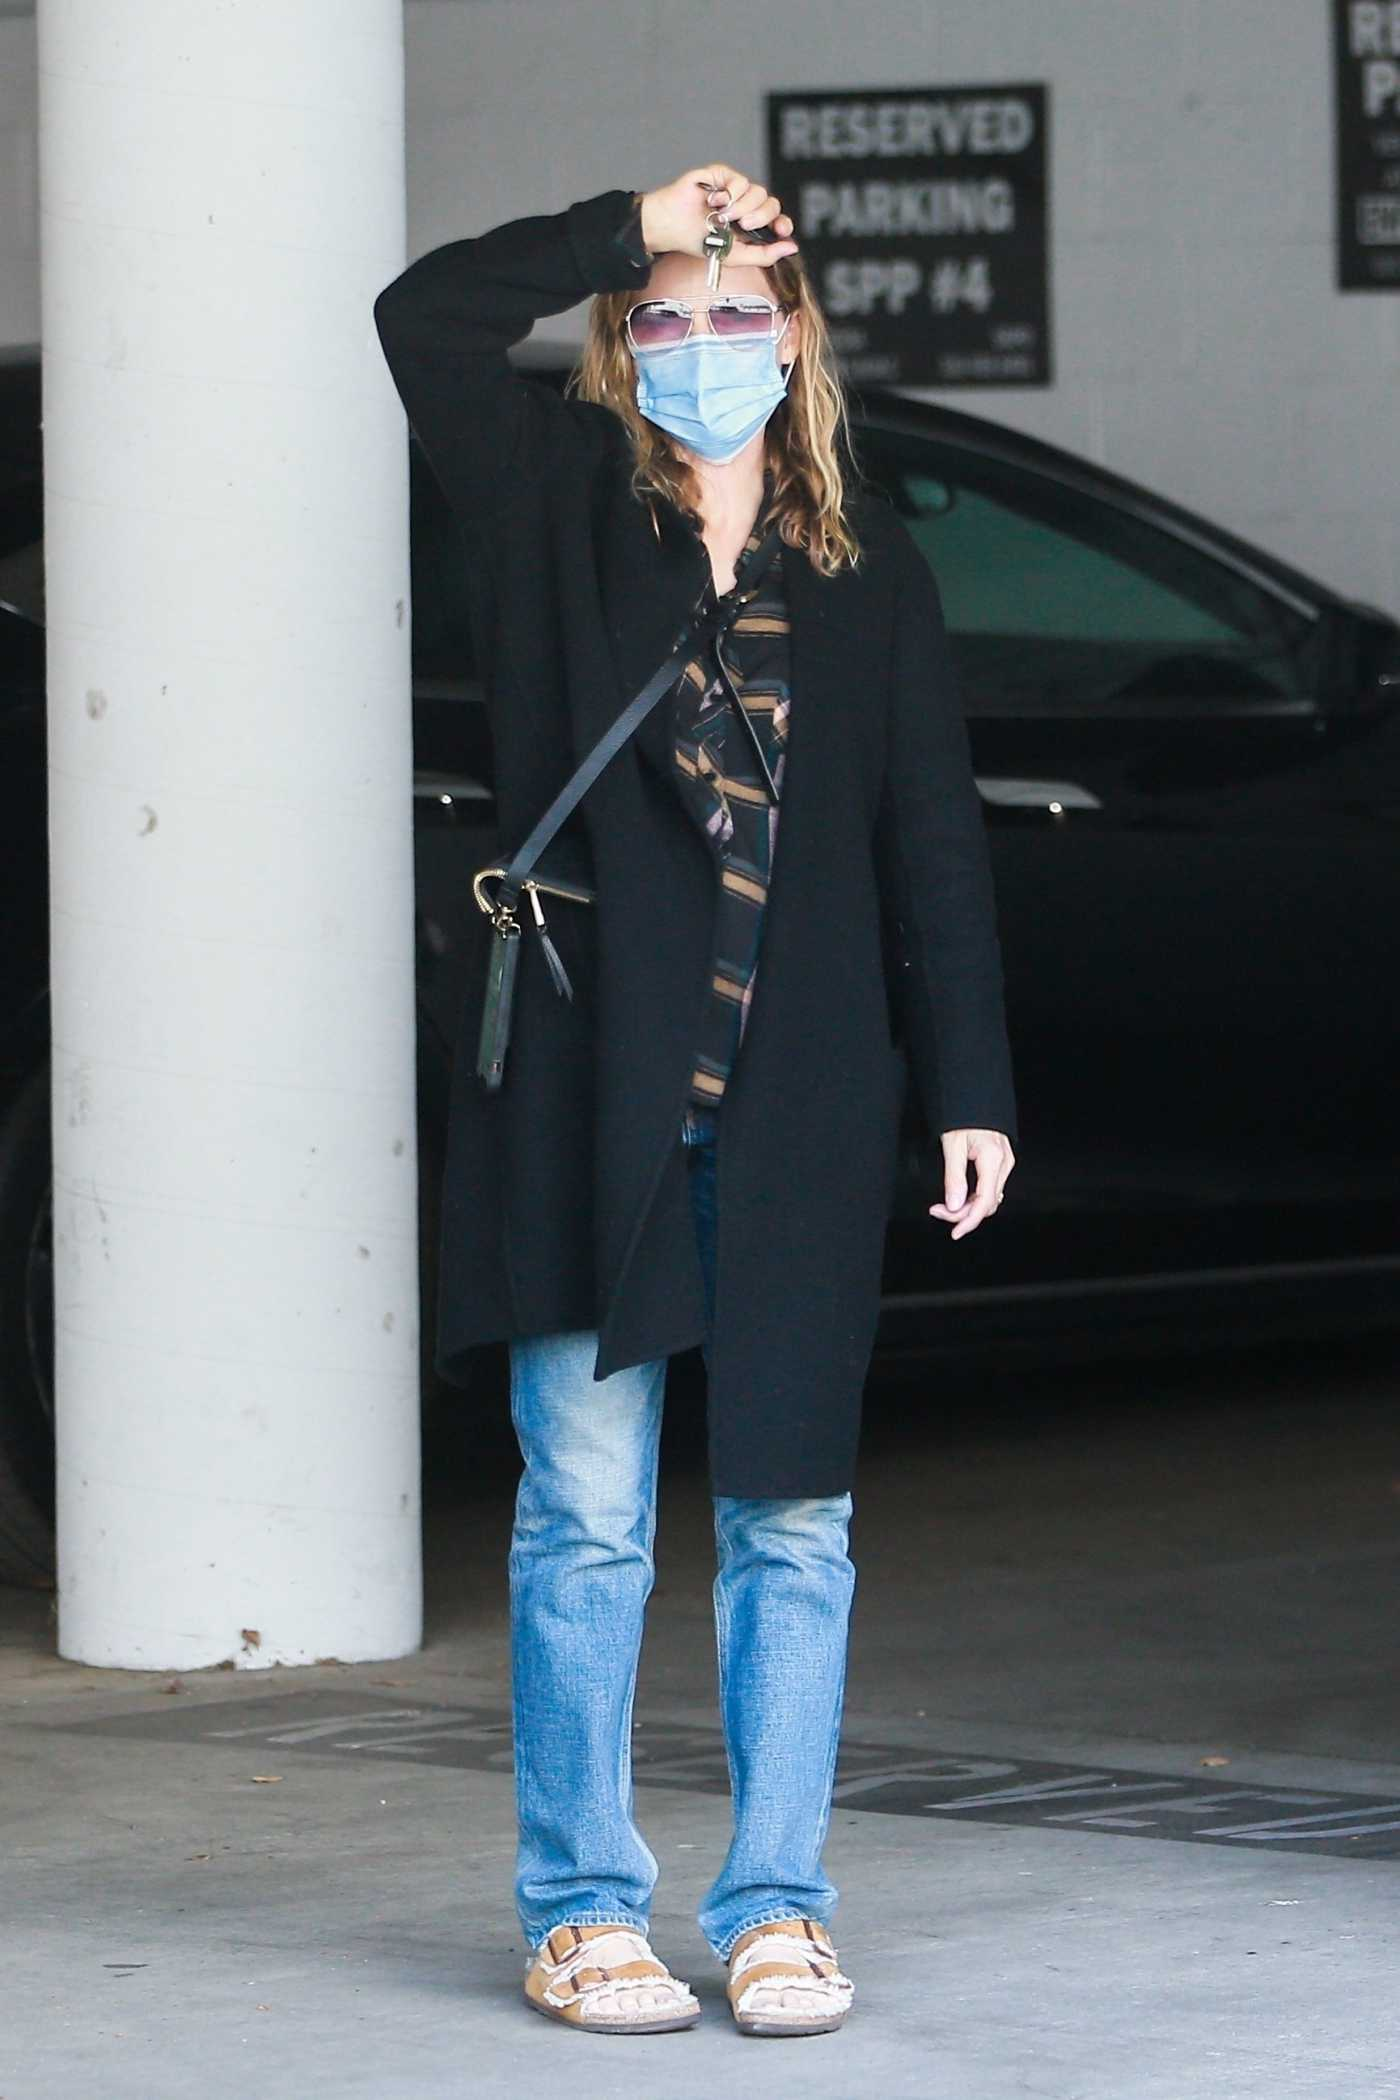 Michelle Pfeiffer in a Black Coat Heads to Her Office in Santa Monica 01/11/2021